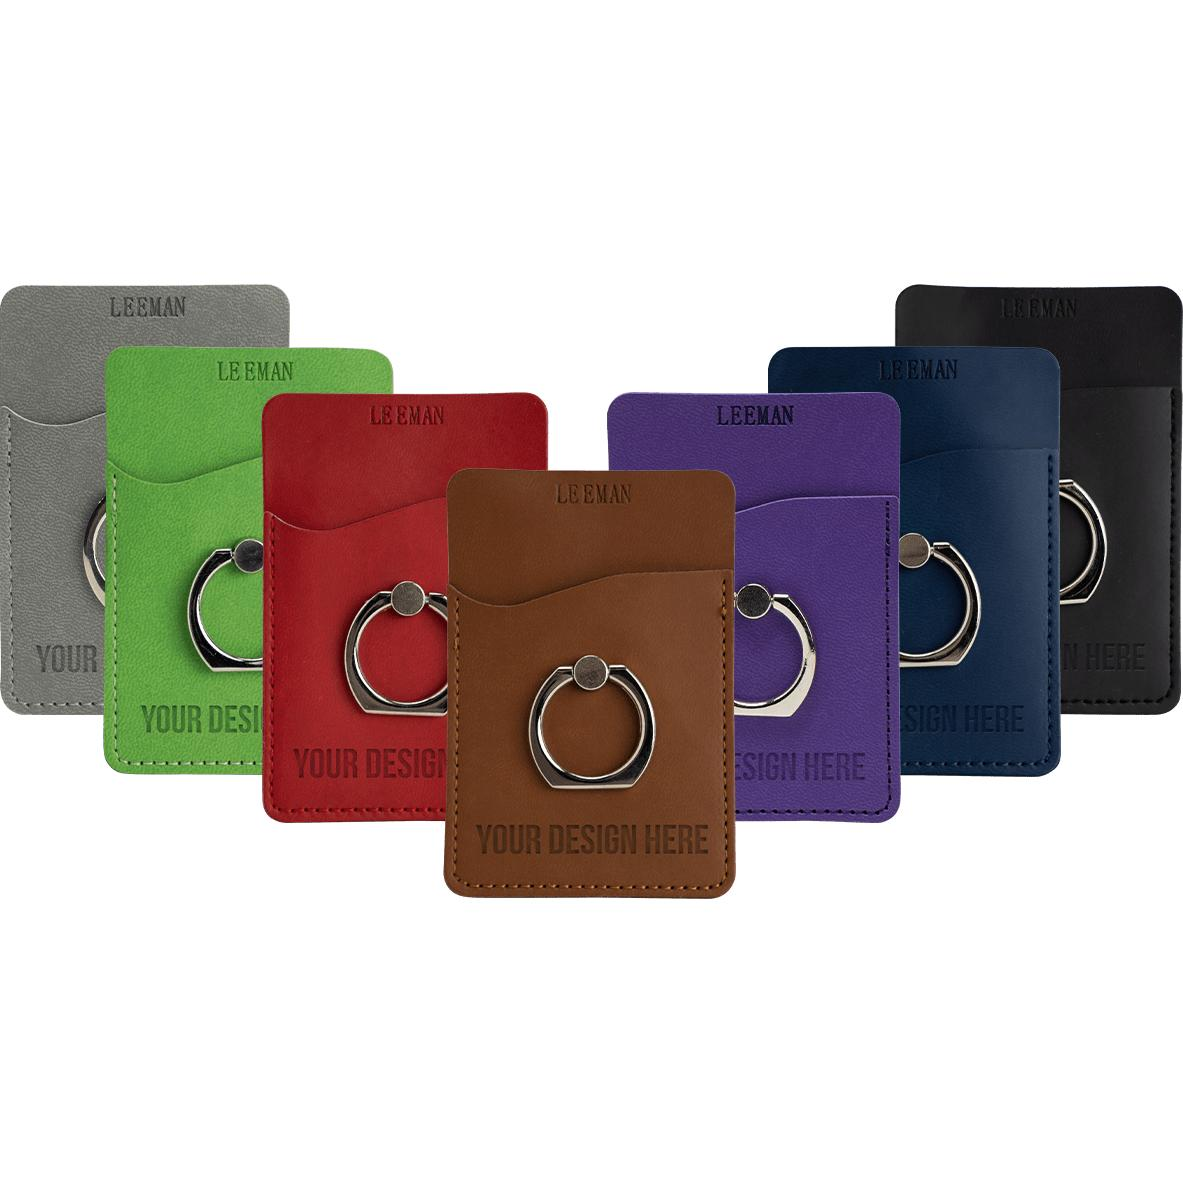 tuscany card holder with metal ring phone stand - Card Holder